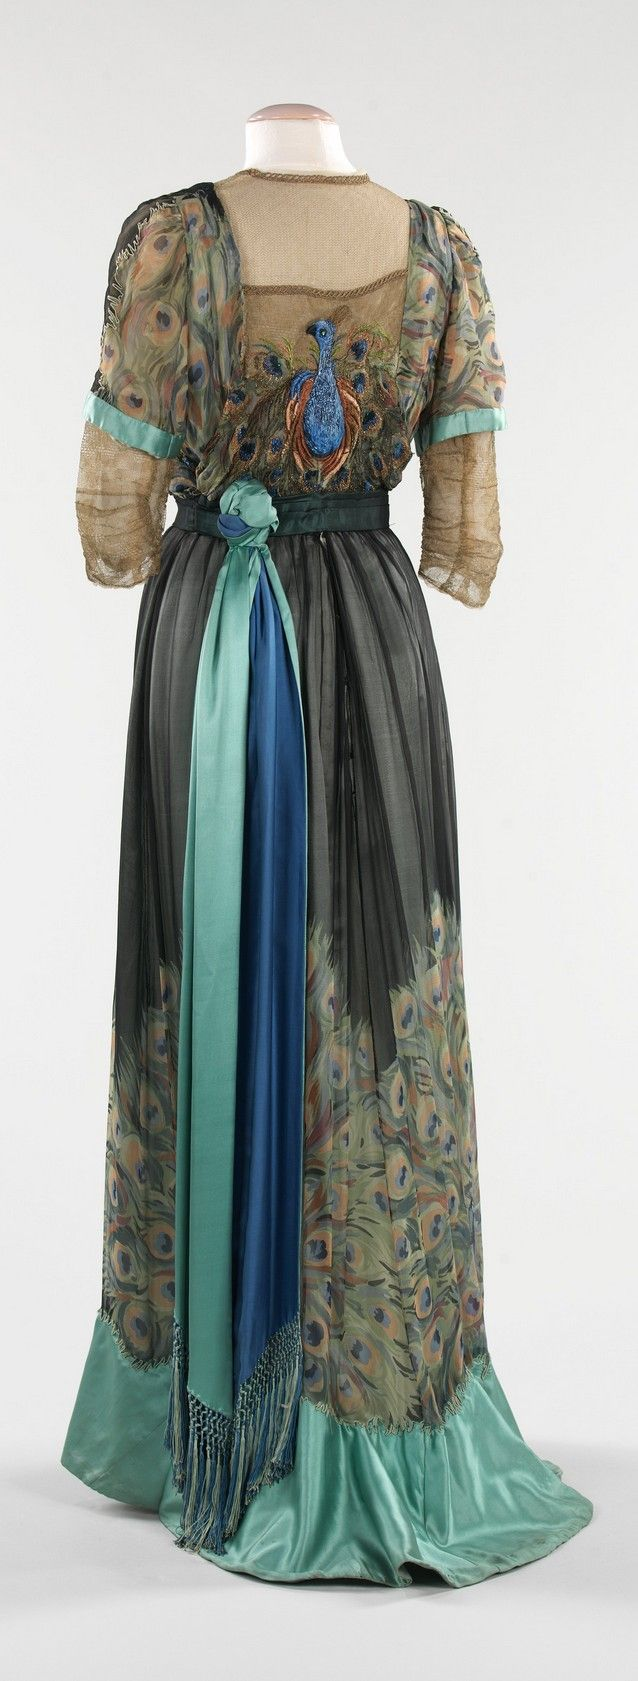 Silk, metal dress, 1910 - MMA